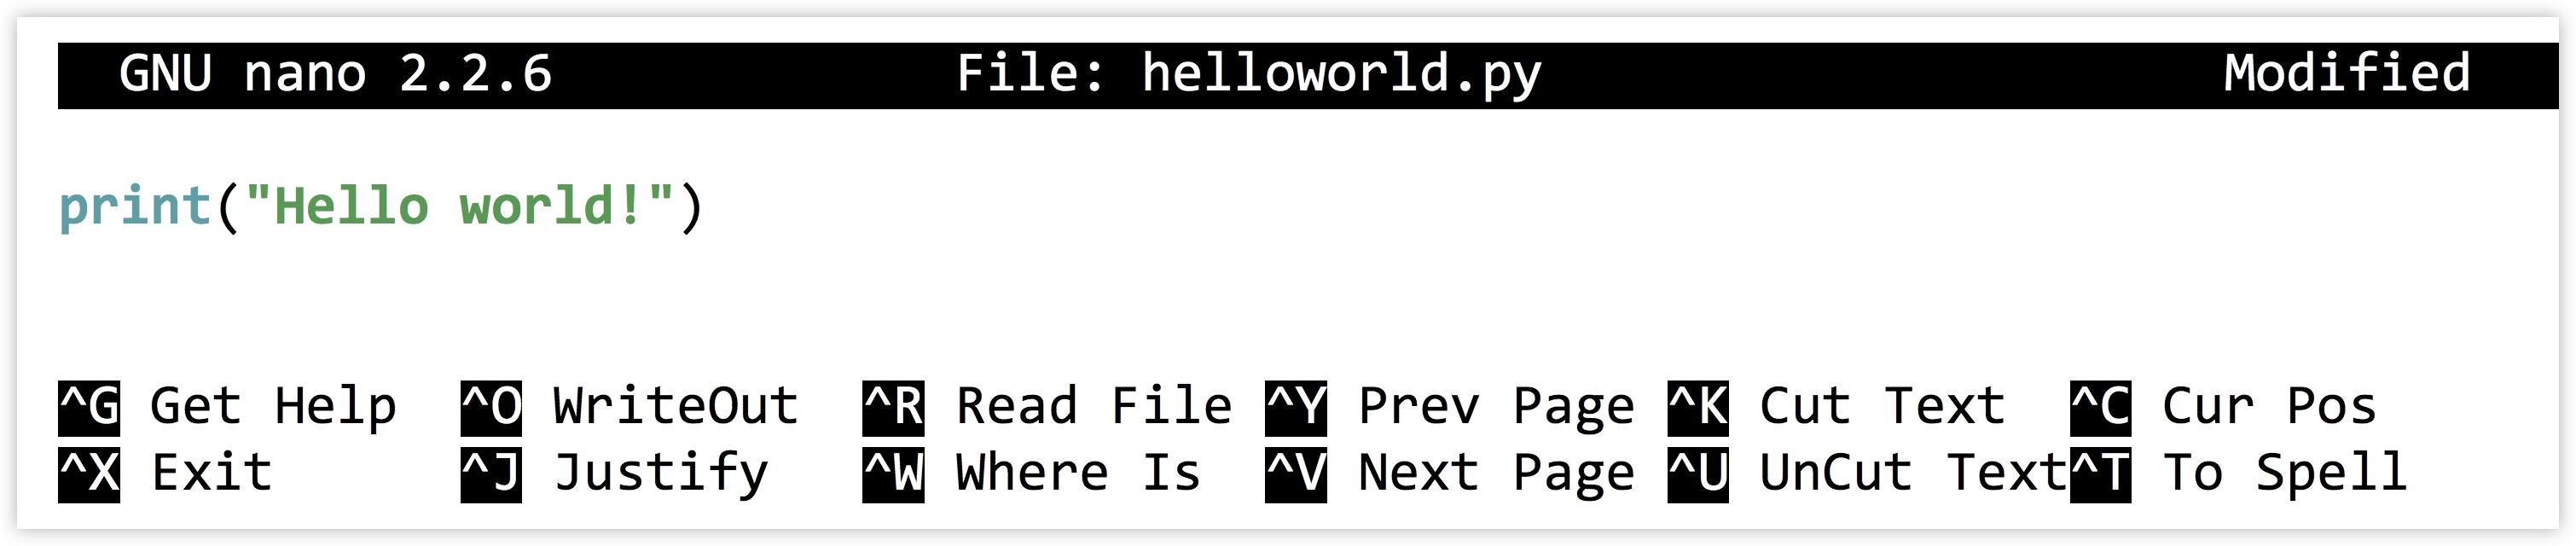 II.1_6_py_2_hello_world